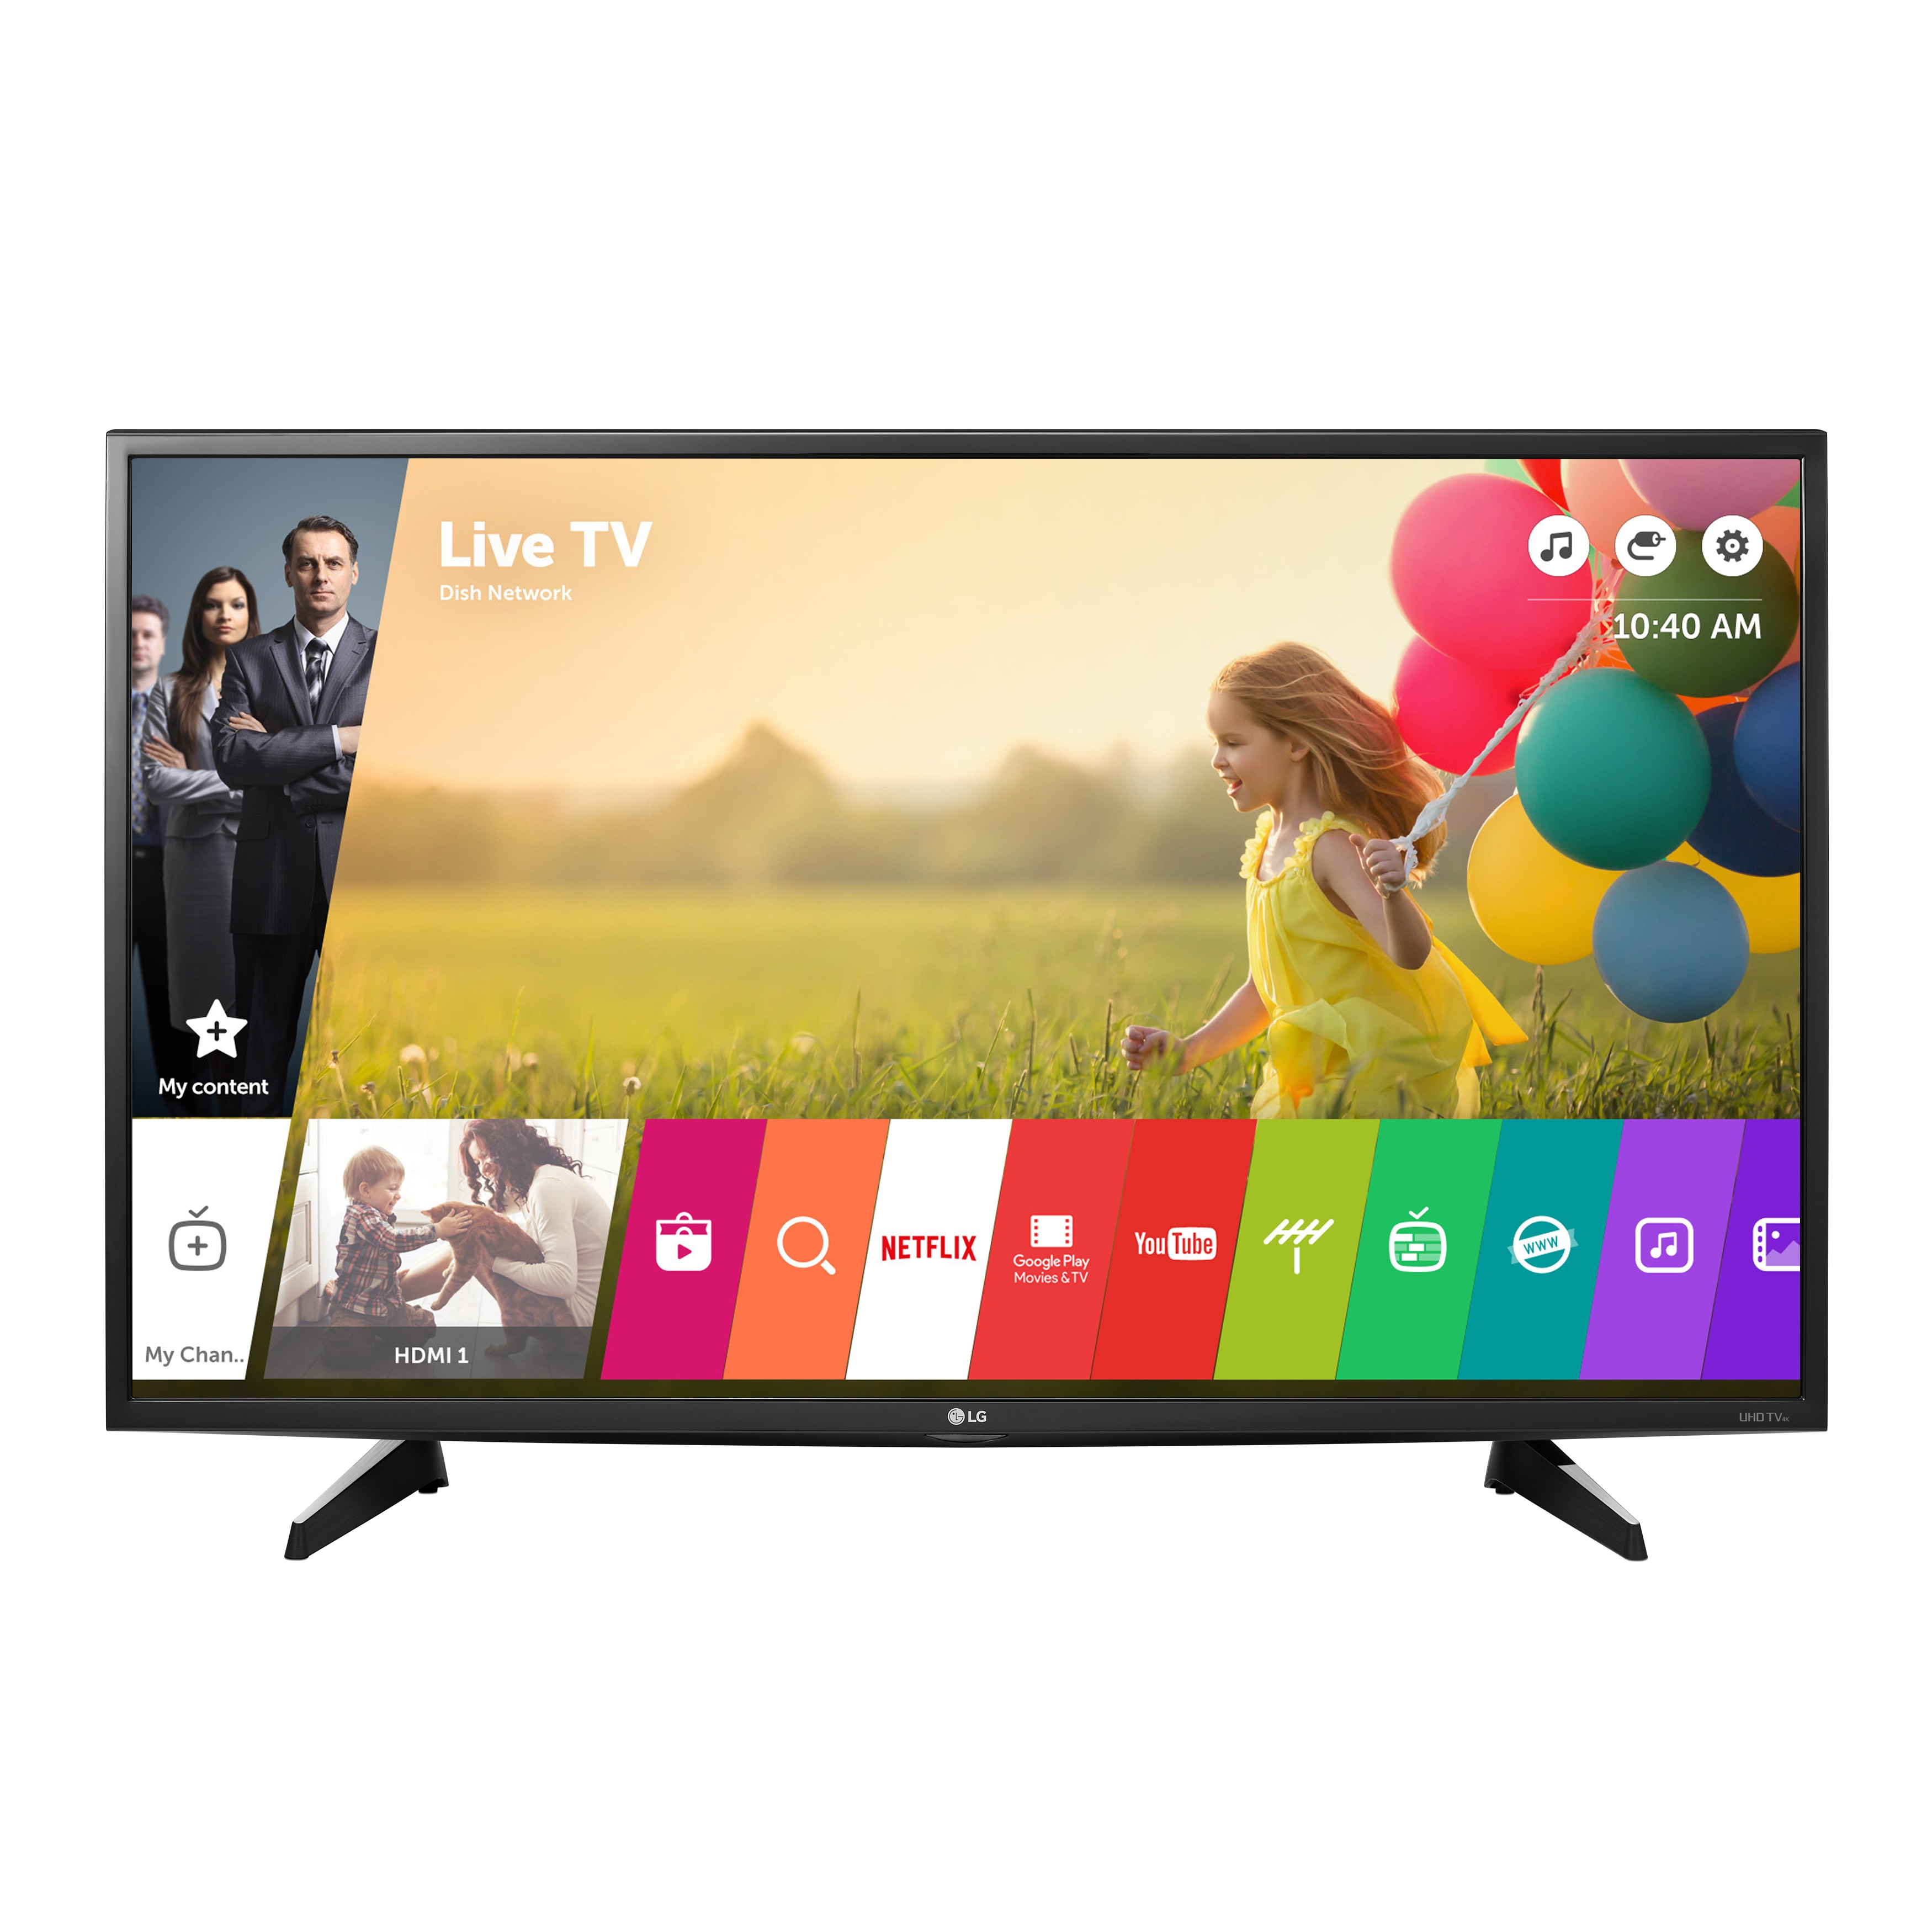 LG 43UH6100 43-inch class 4K UHD Television with Smart tv...